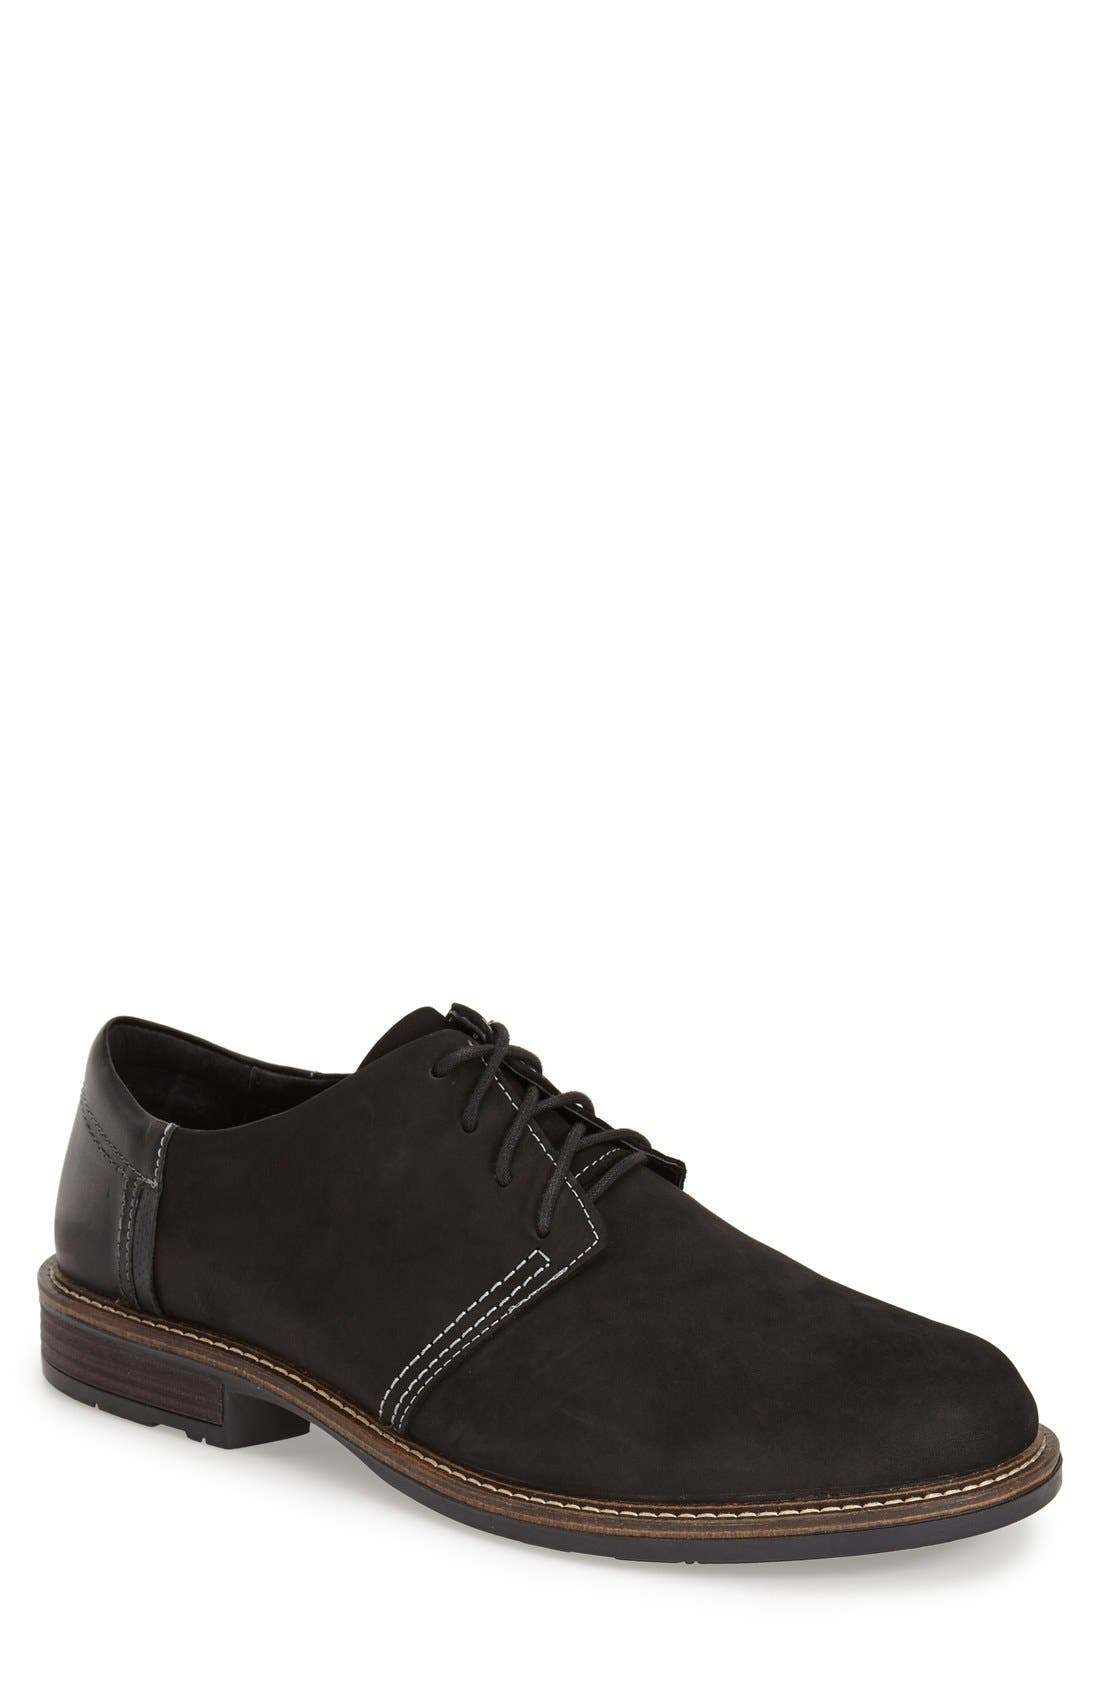 Naot Plain Toe Derby (Men)